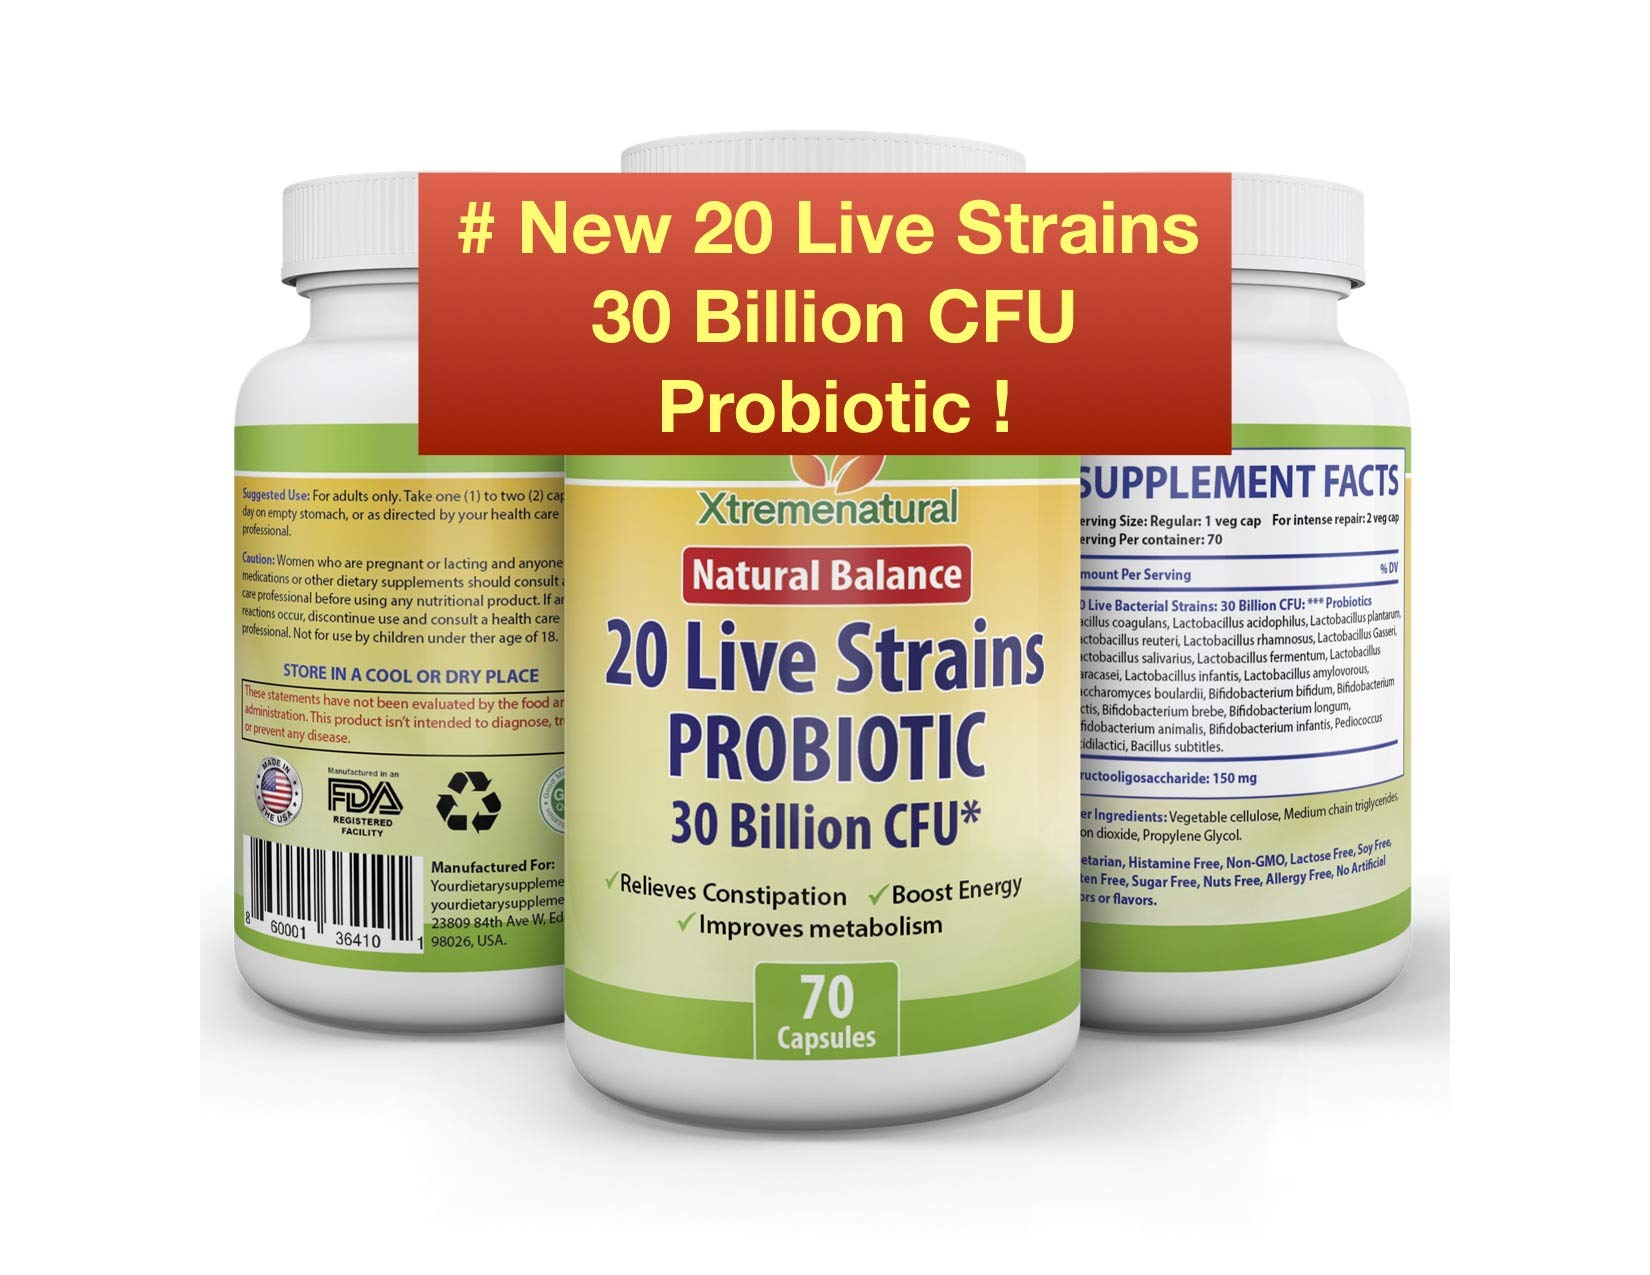 Xtremebiotic Probiotic -20 Strains - 30 Billion CFU - 70 Capsules - for Weight loss - Constipation - Regular Bowel Movement - Fatigue - Immune System Health - Beyond 2 Months Supply